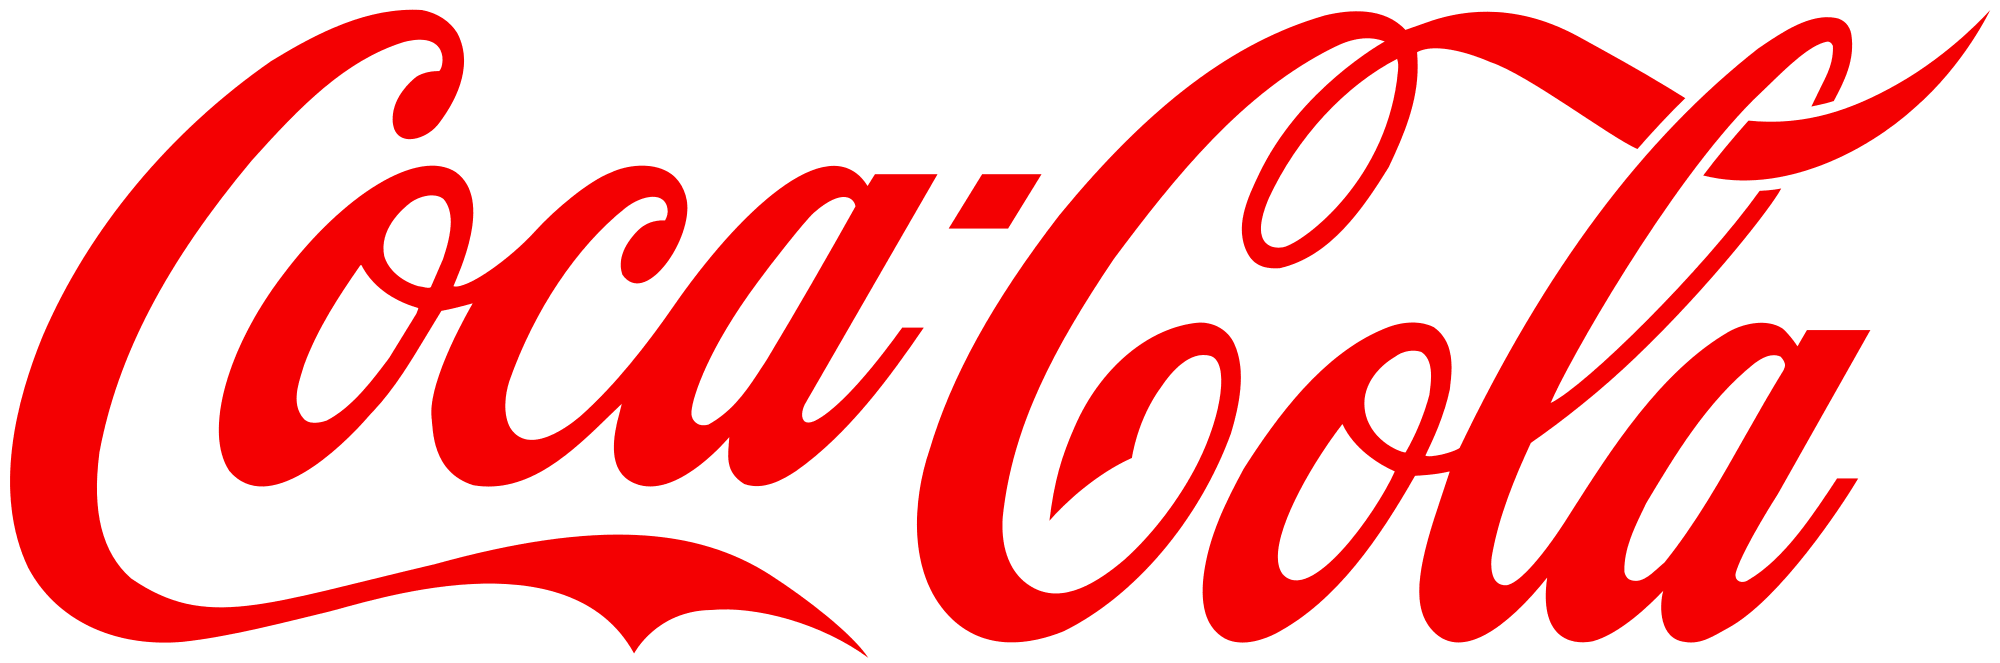 Logo for coca cola written in bright red cursive lettering.